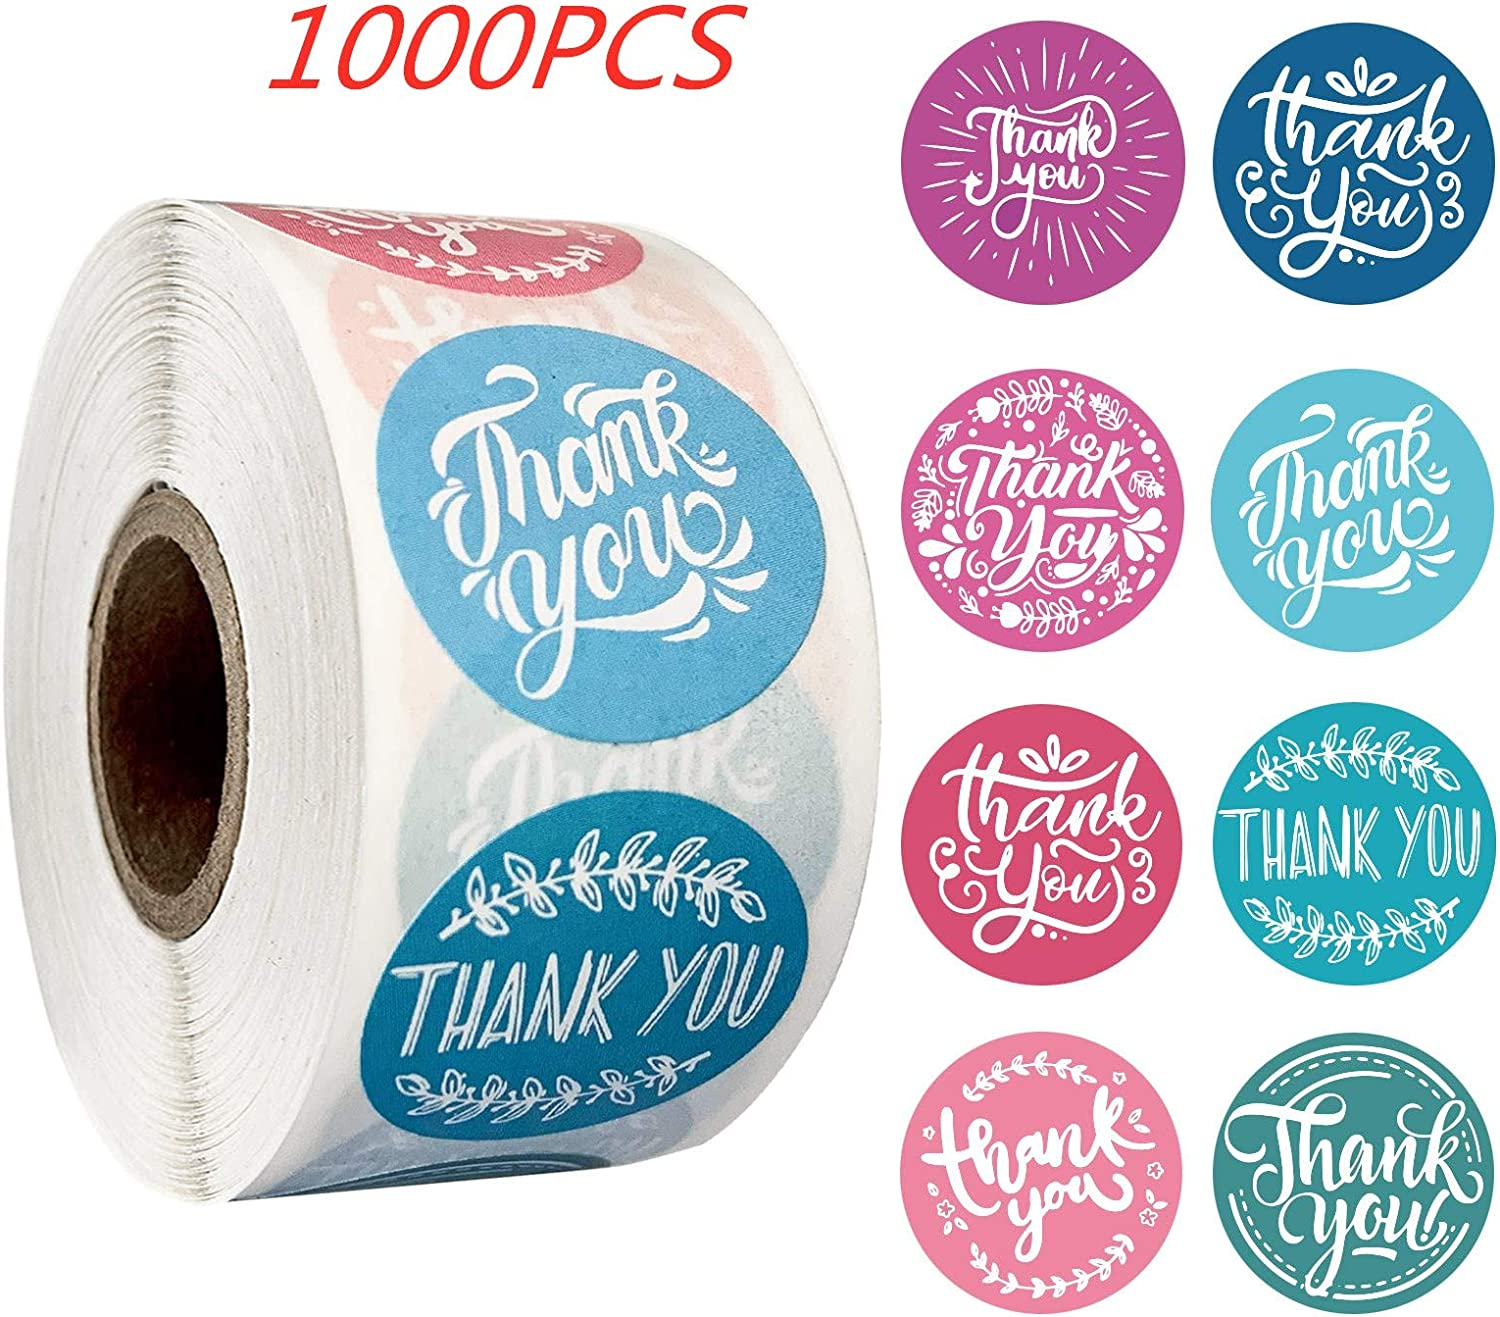 Round Thank You Stickers Wedding Favors Party Handmade Envelope Seal Stationery